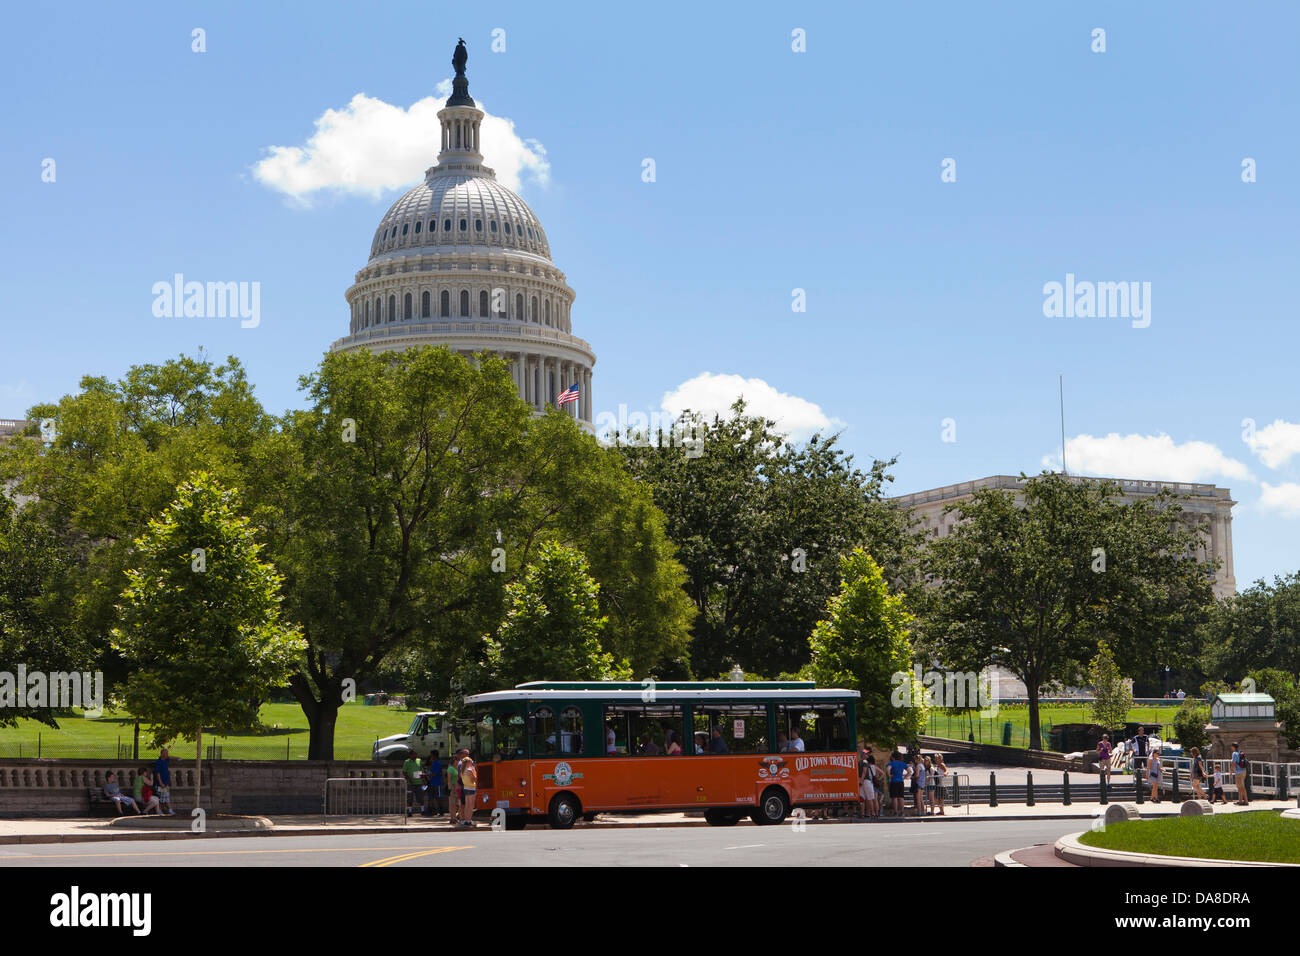 Tour trolley at the US Capitol building - Washington, DC USA - Stock Image